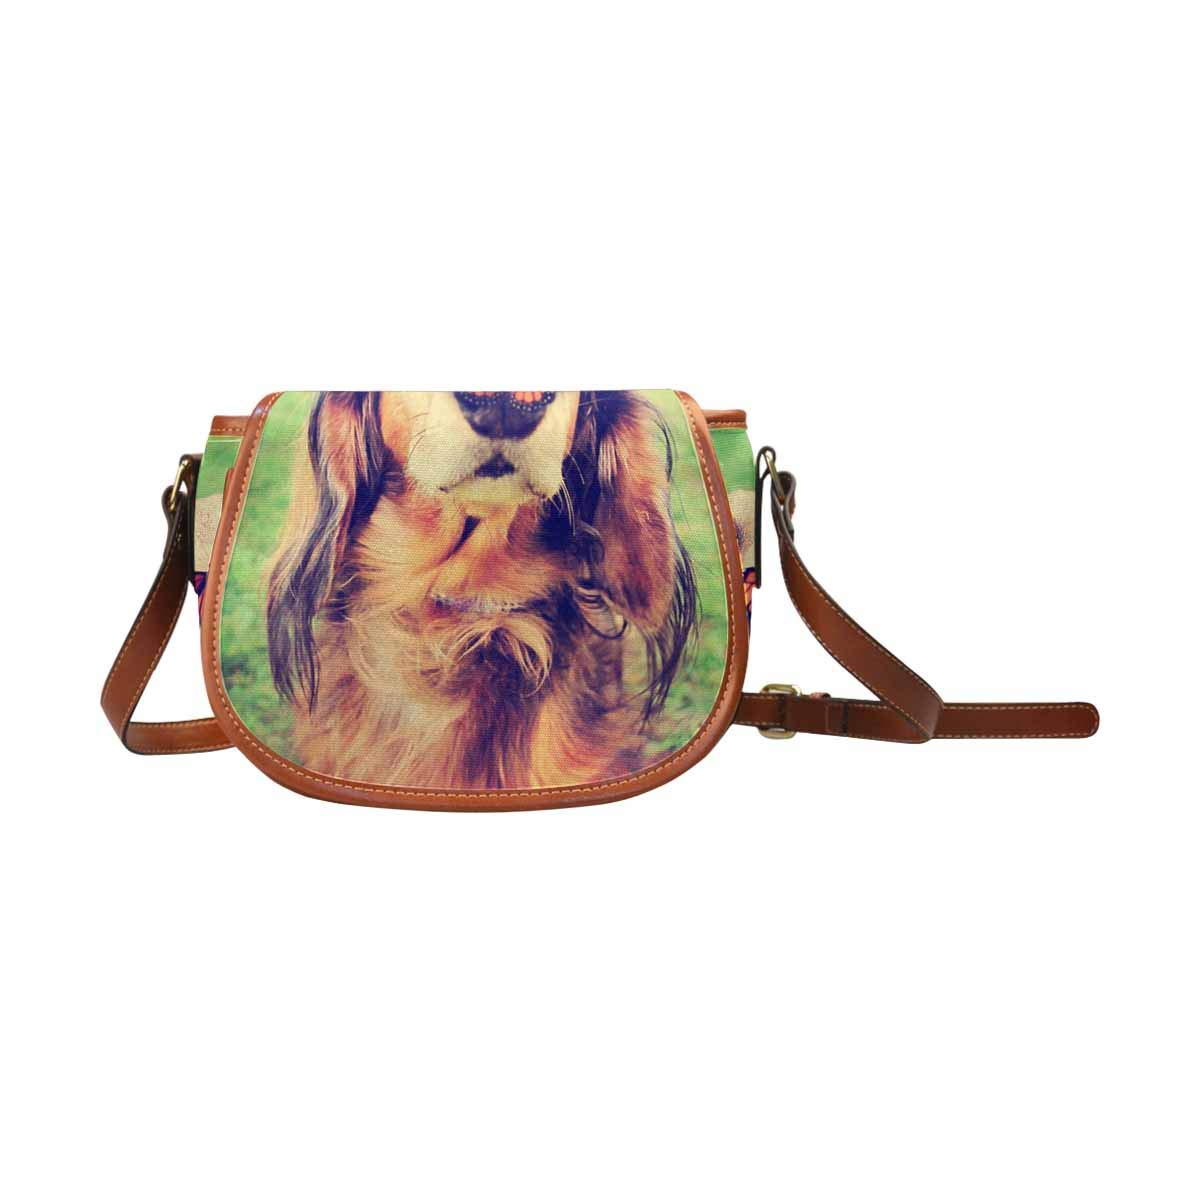 InterestPrint Cute Dachshund a Butterfly on His or Her Nose Women Crossbody Bag Saddle Shoulder Bag Small Purse Satchel